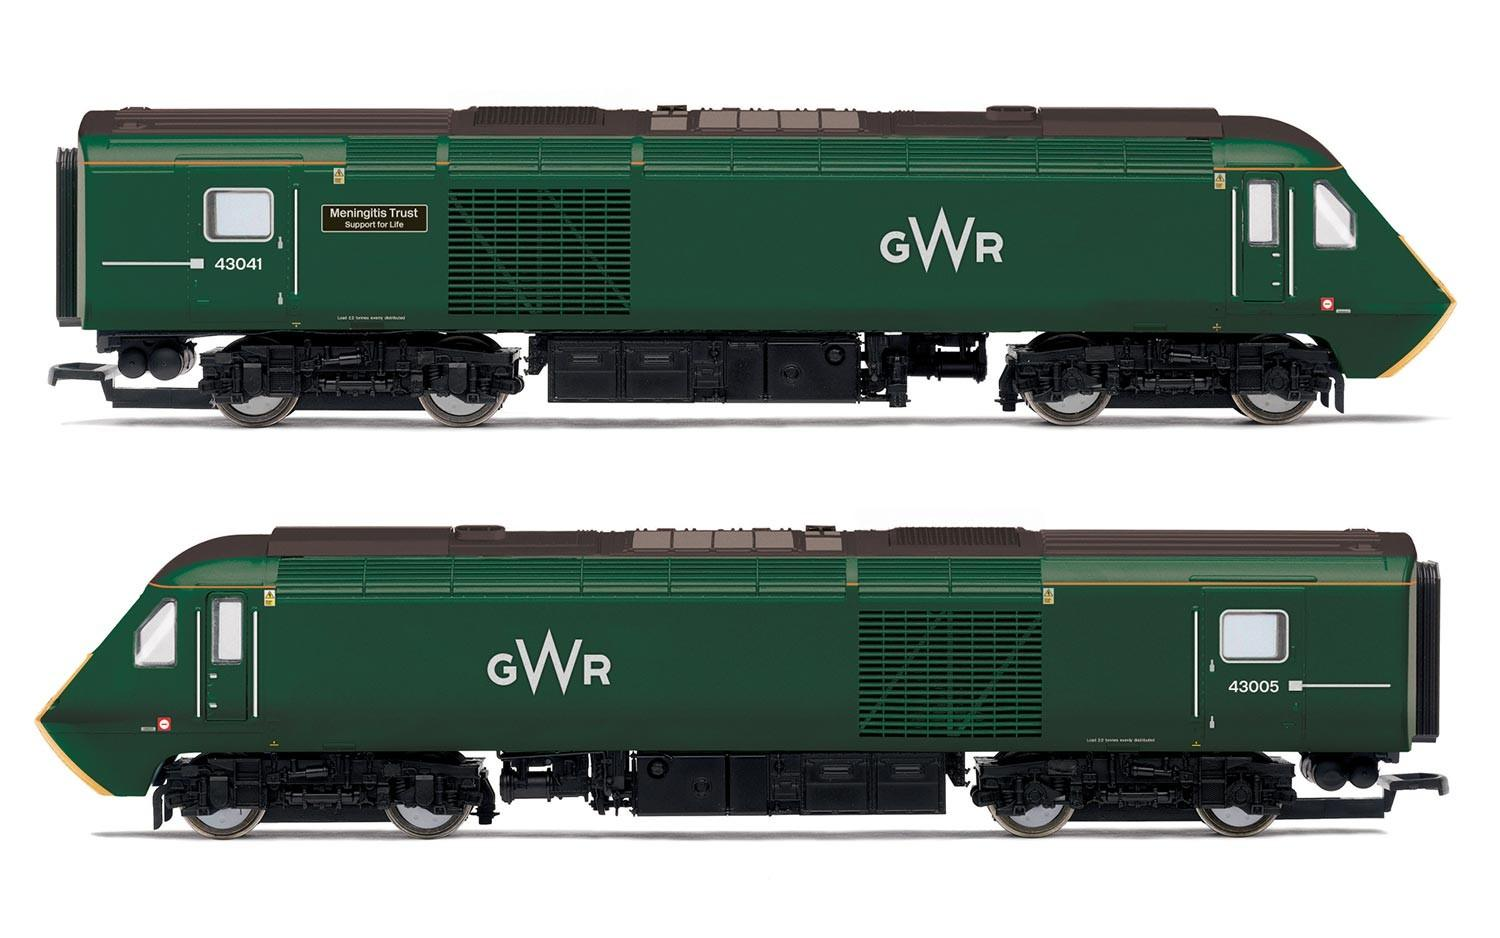 Hornby - R3685 - Class 43 HST power car pack GWR green Livery